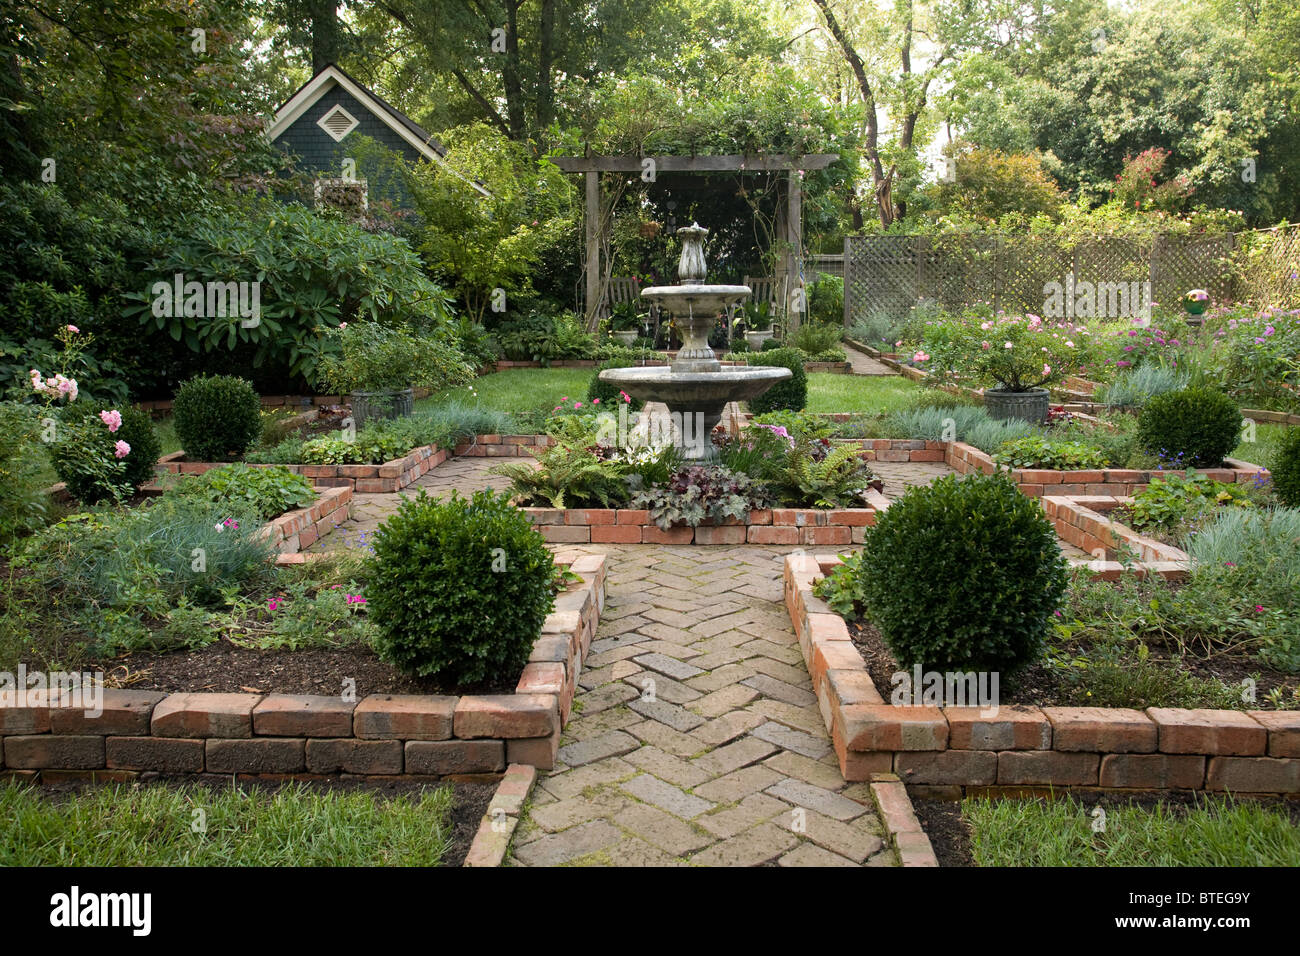 Brick Courtyard With Water Fountain And Gardens Stock